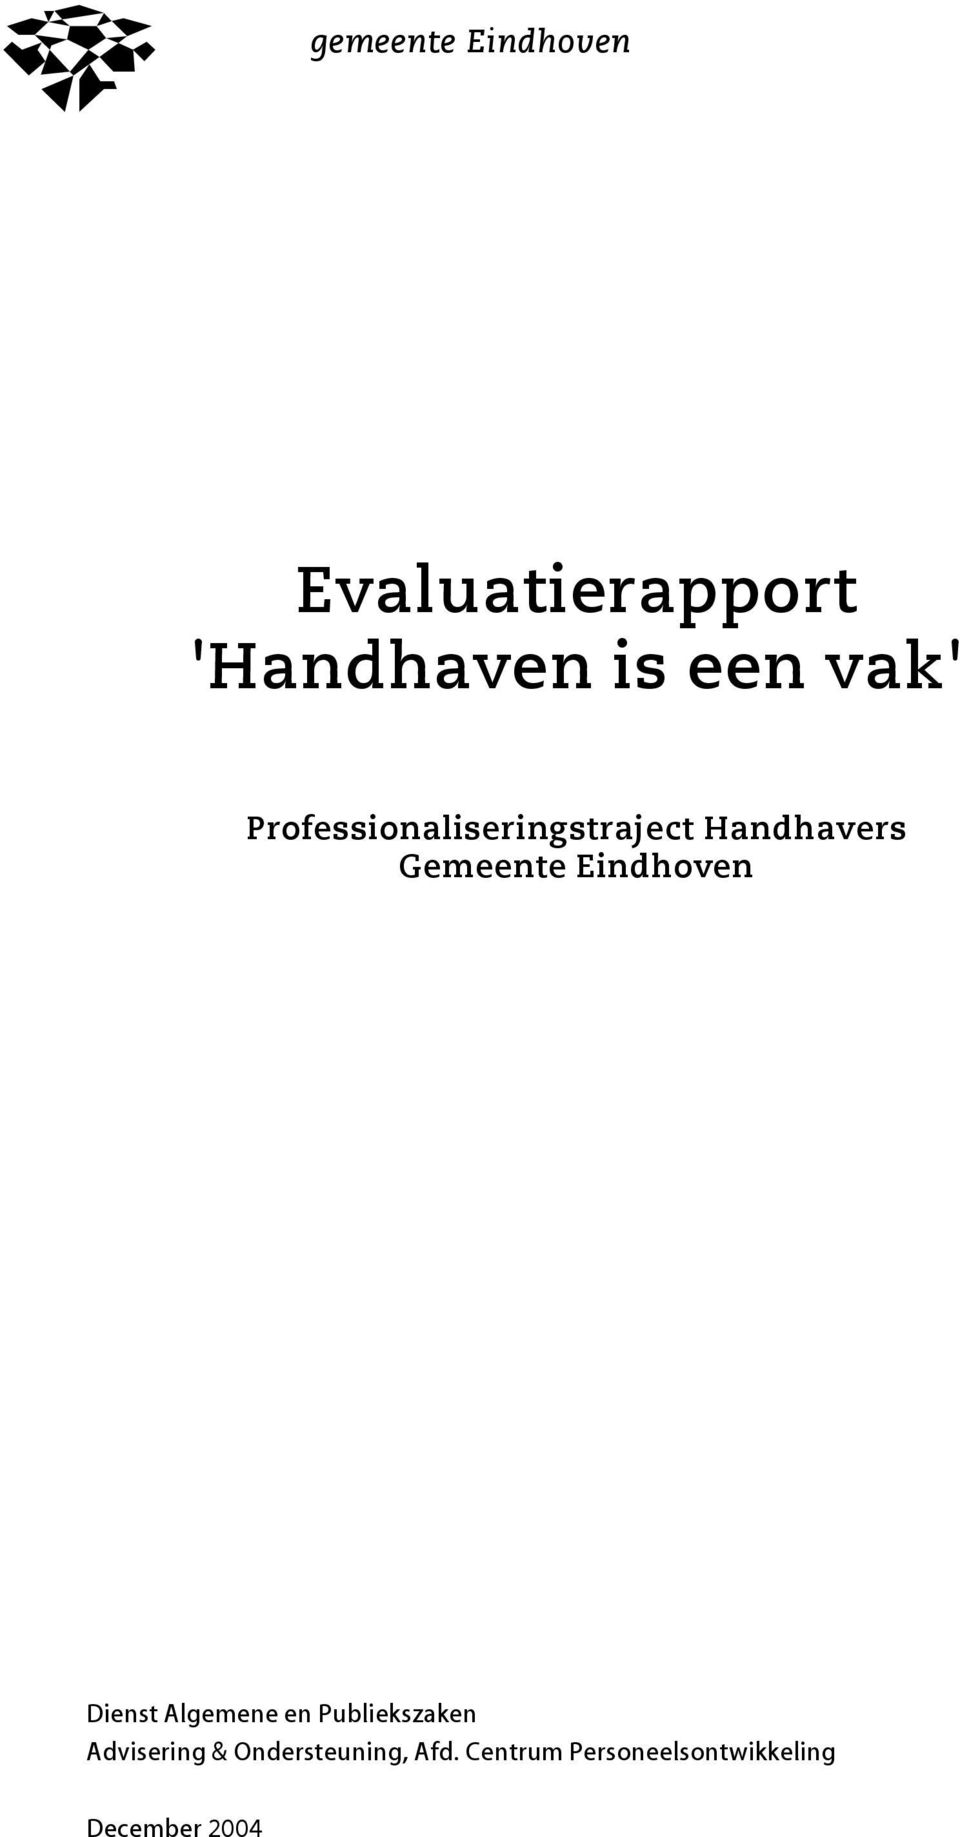 Professionaliseringstraject Handhavers